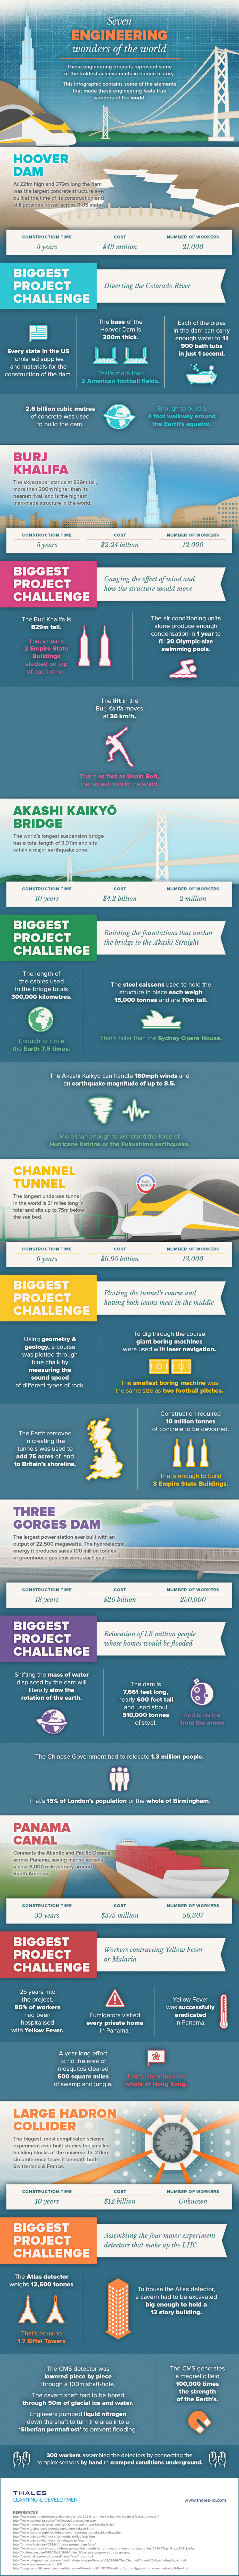 7 Engineering Wonders of the World – Infographic Infographic